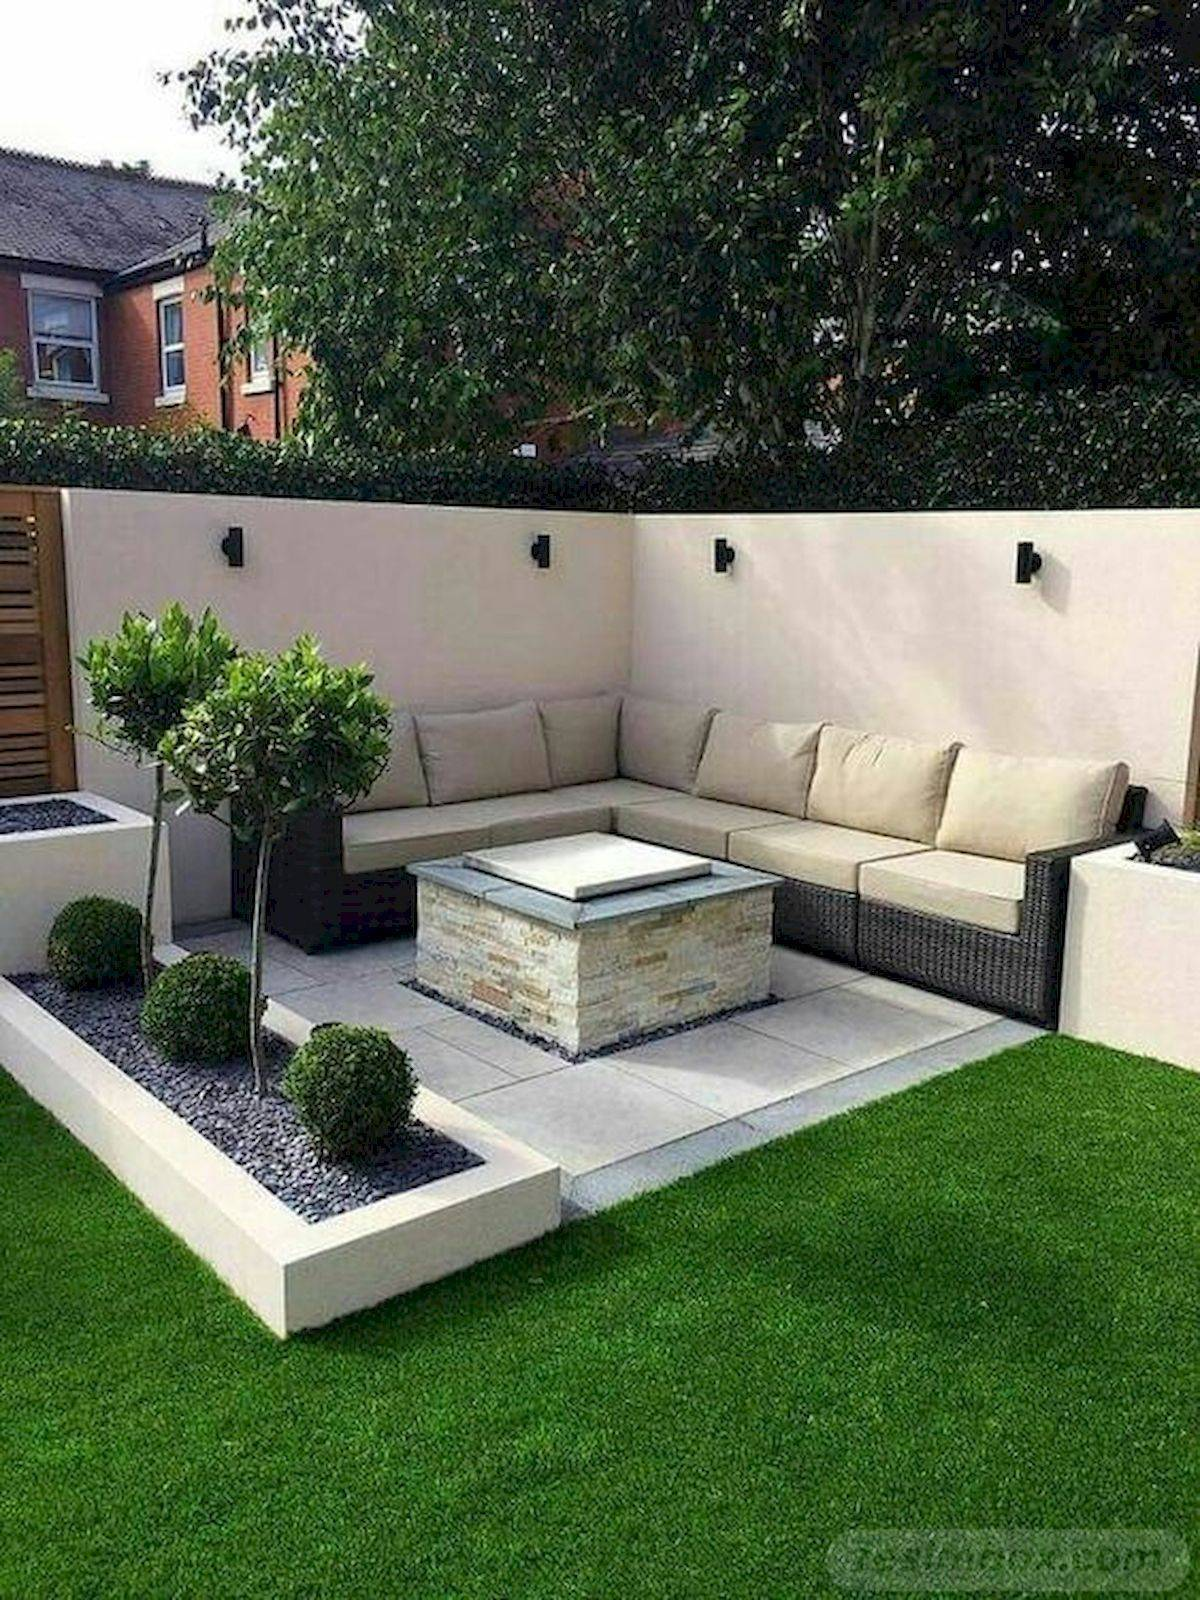 creative garden ideas-546624473520389807